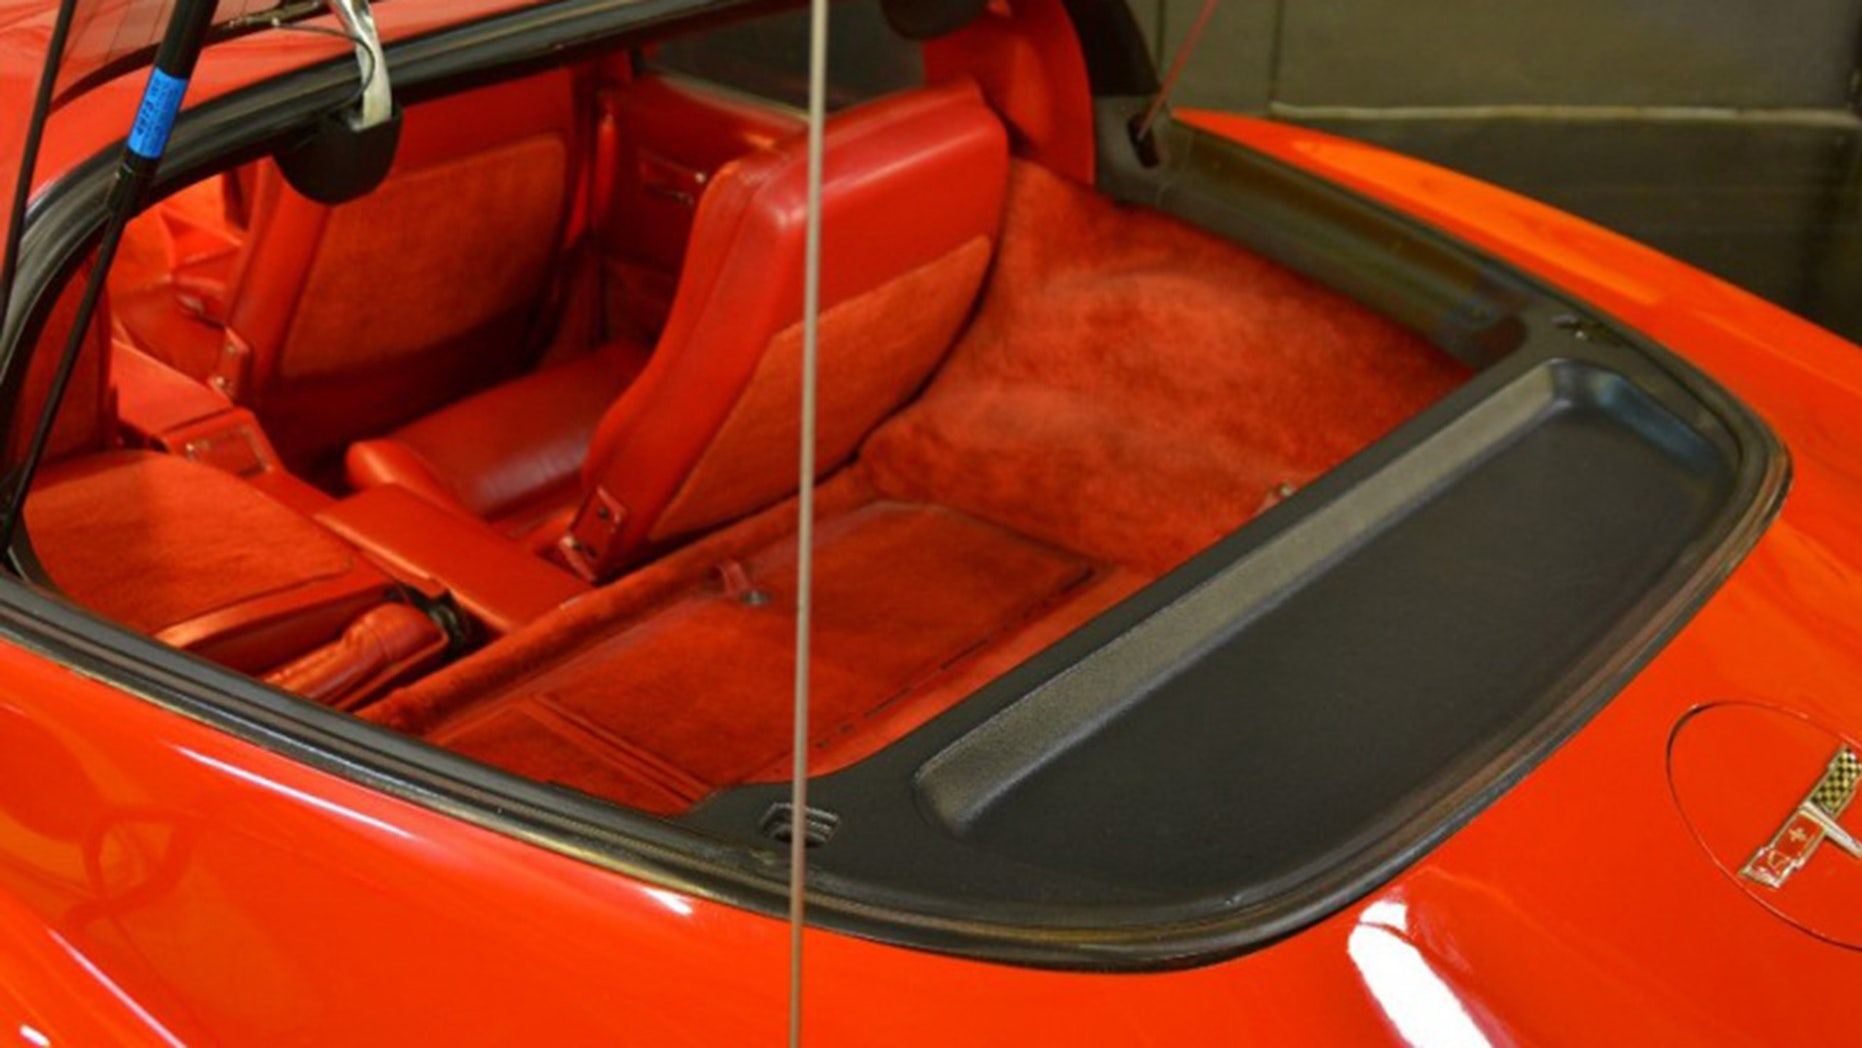 4-Door Chevrolet Corvette interior